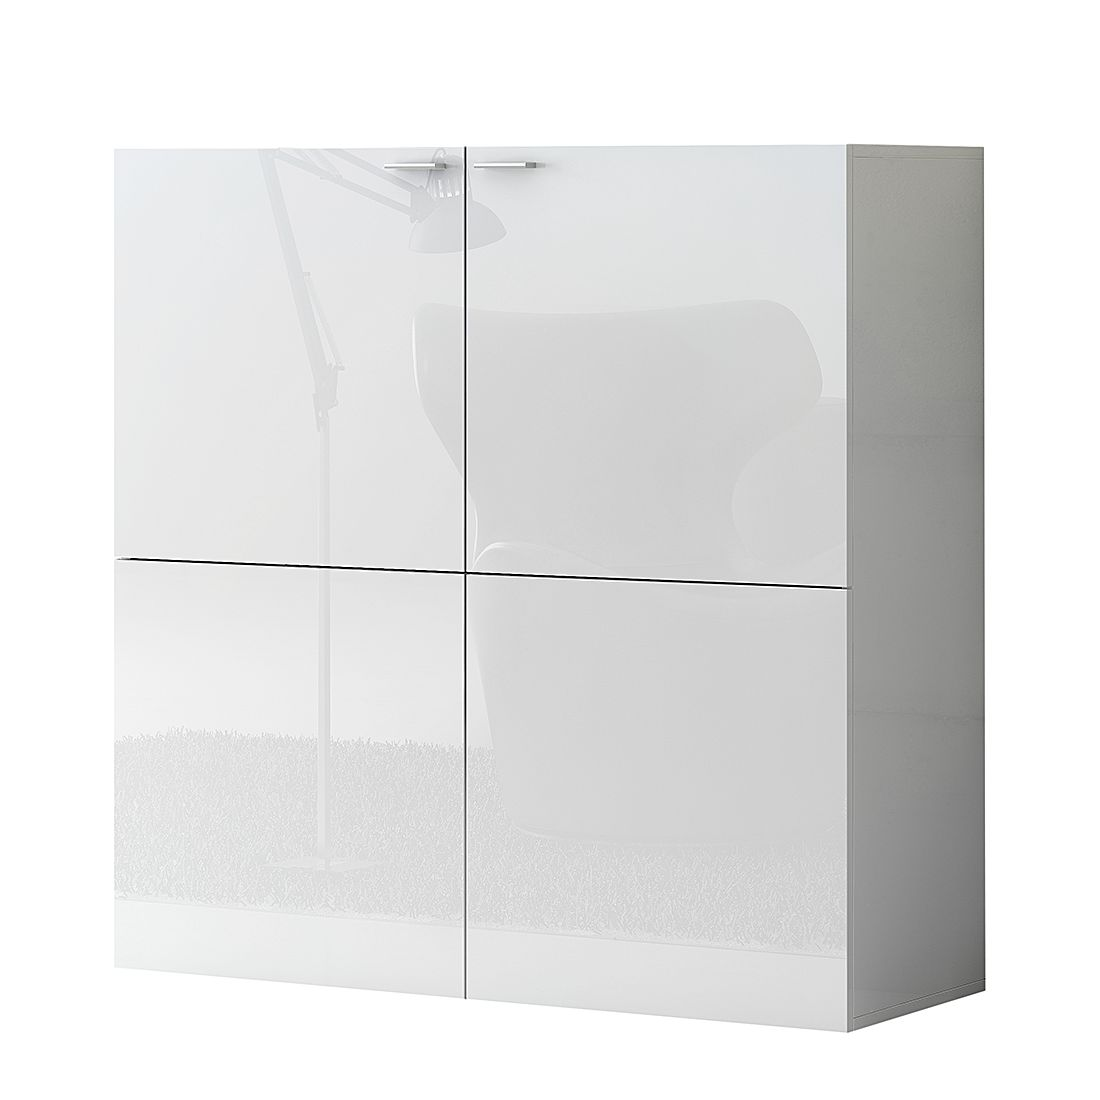 Home 24 - Commode emporior - blanc - blanc brillant, fredriks